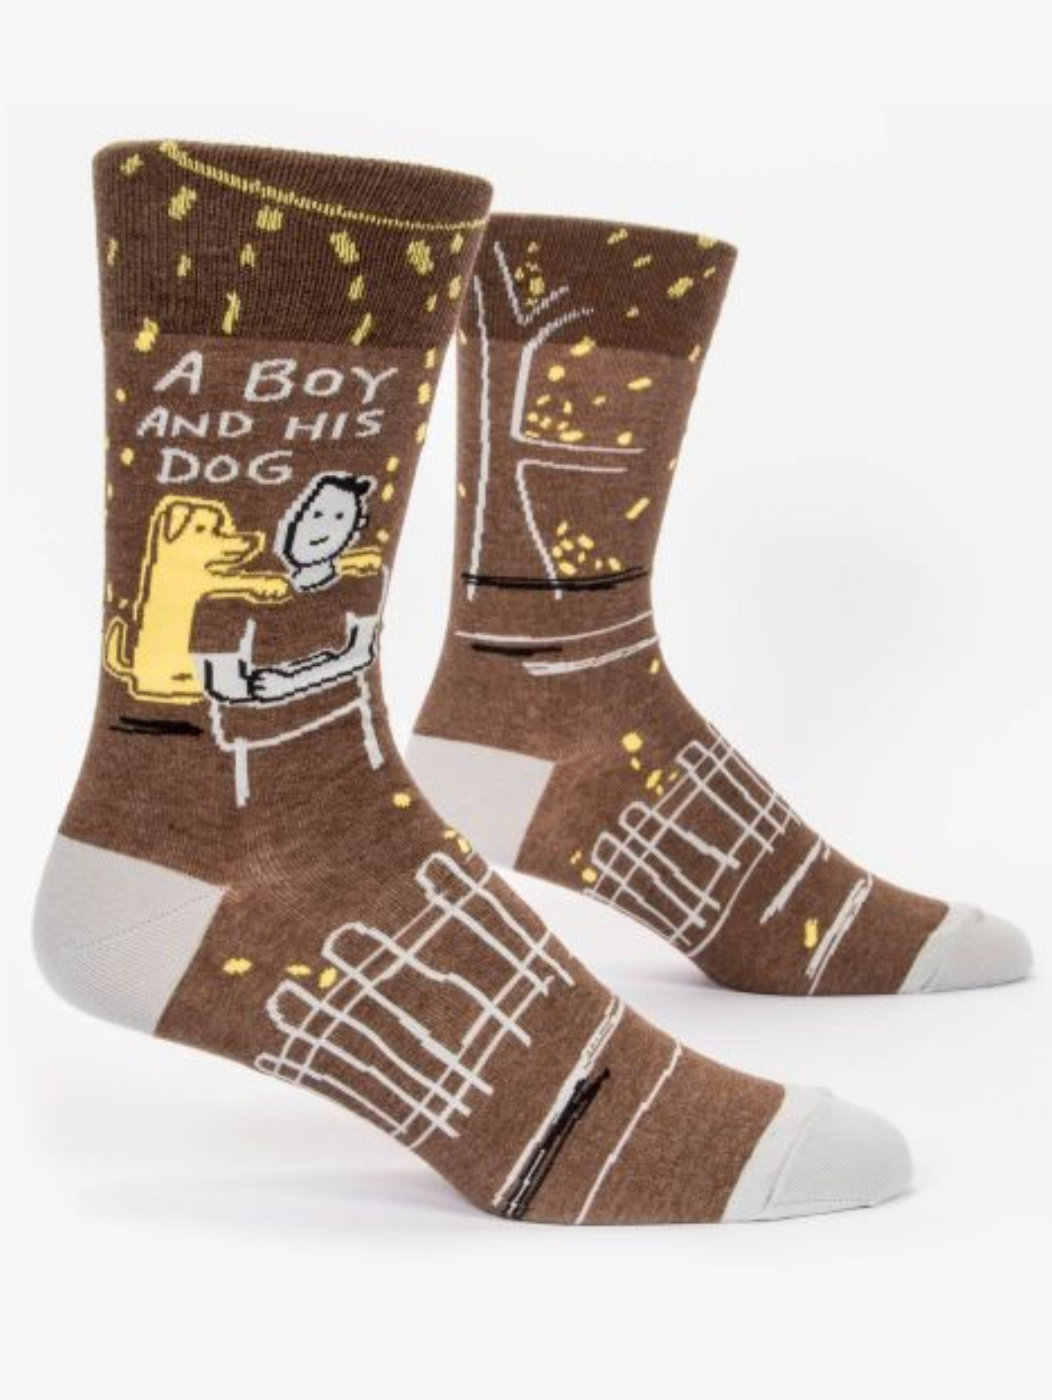 Blue Q A Boy and His Dog Men's Crew Socks